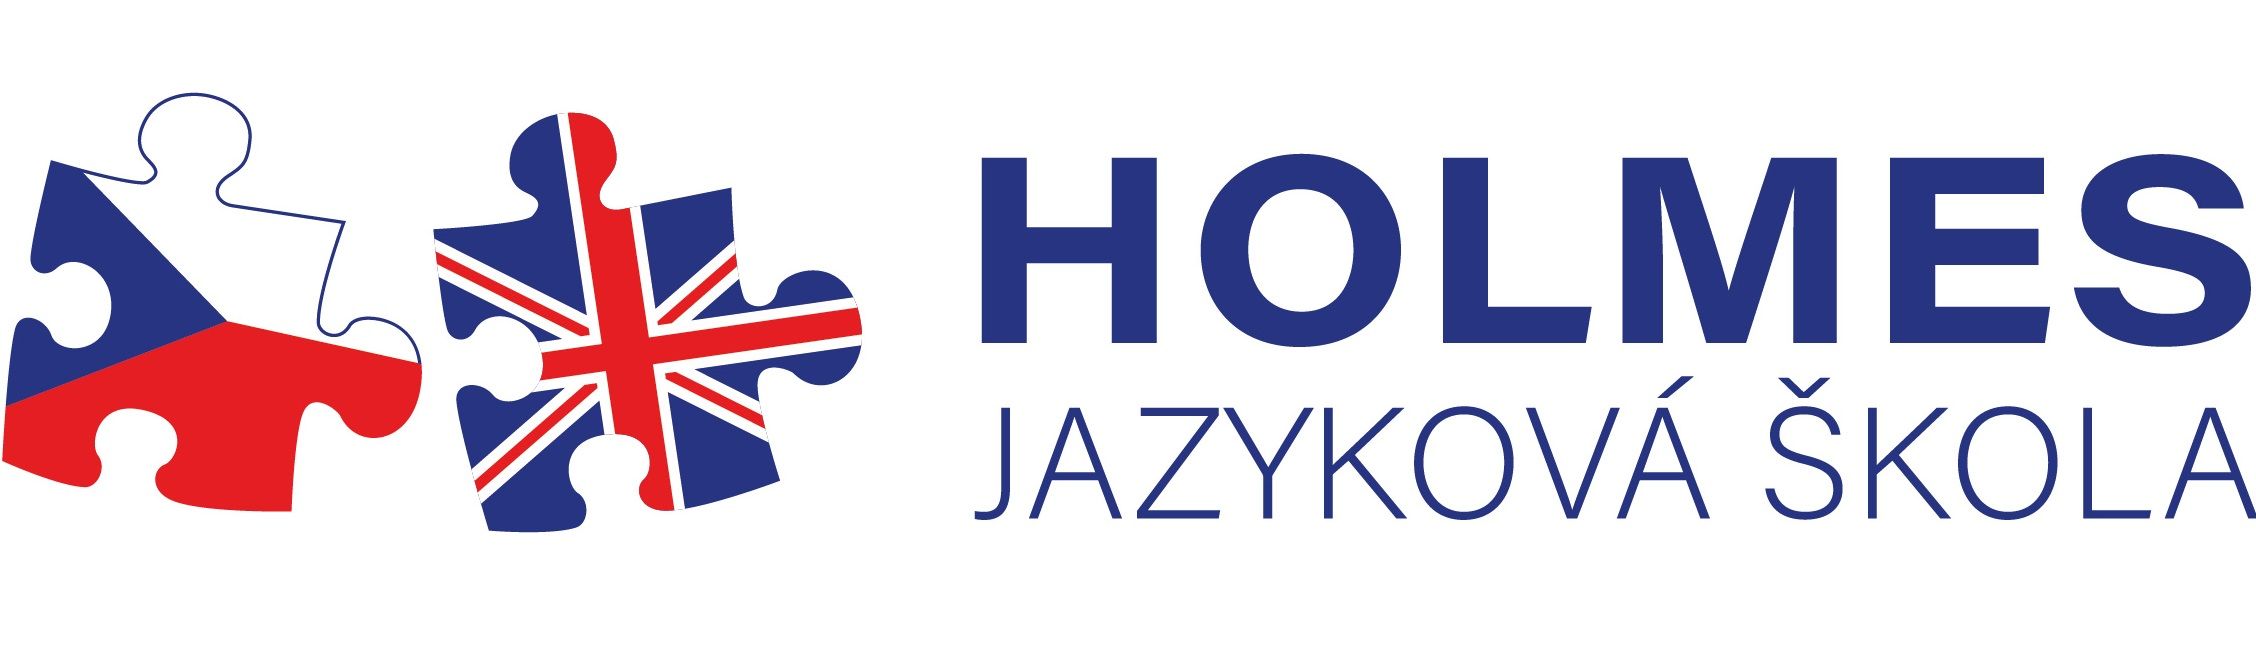 Holmes jazykova skola logo 2019 horizontal_big_edit